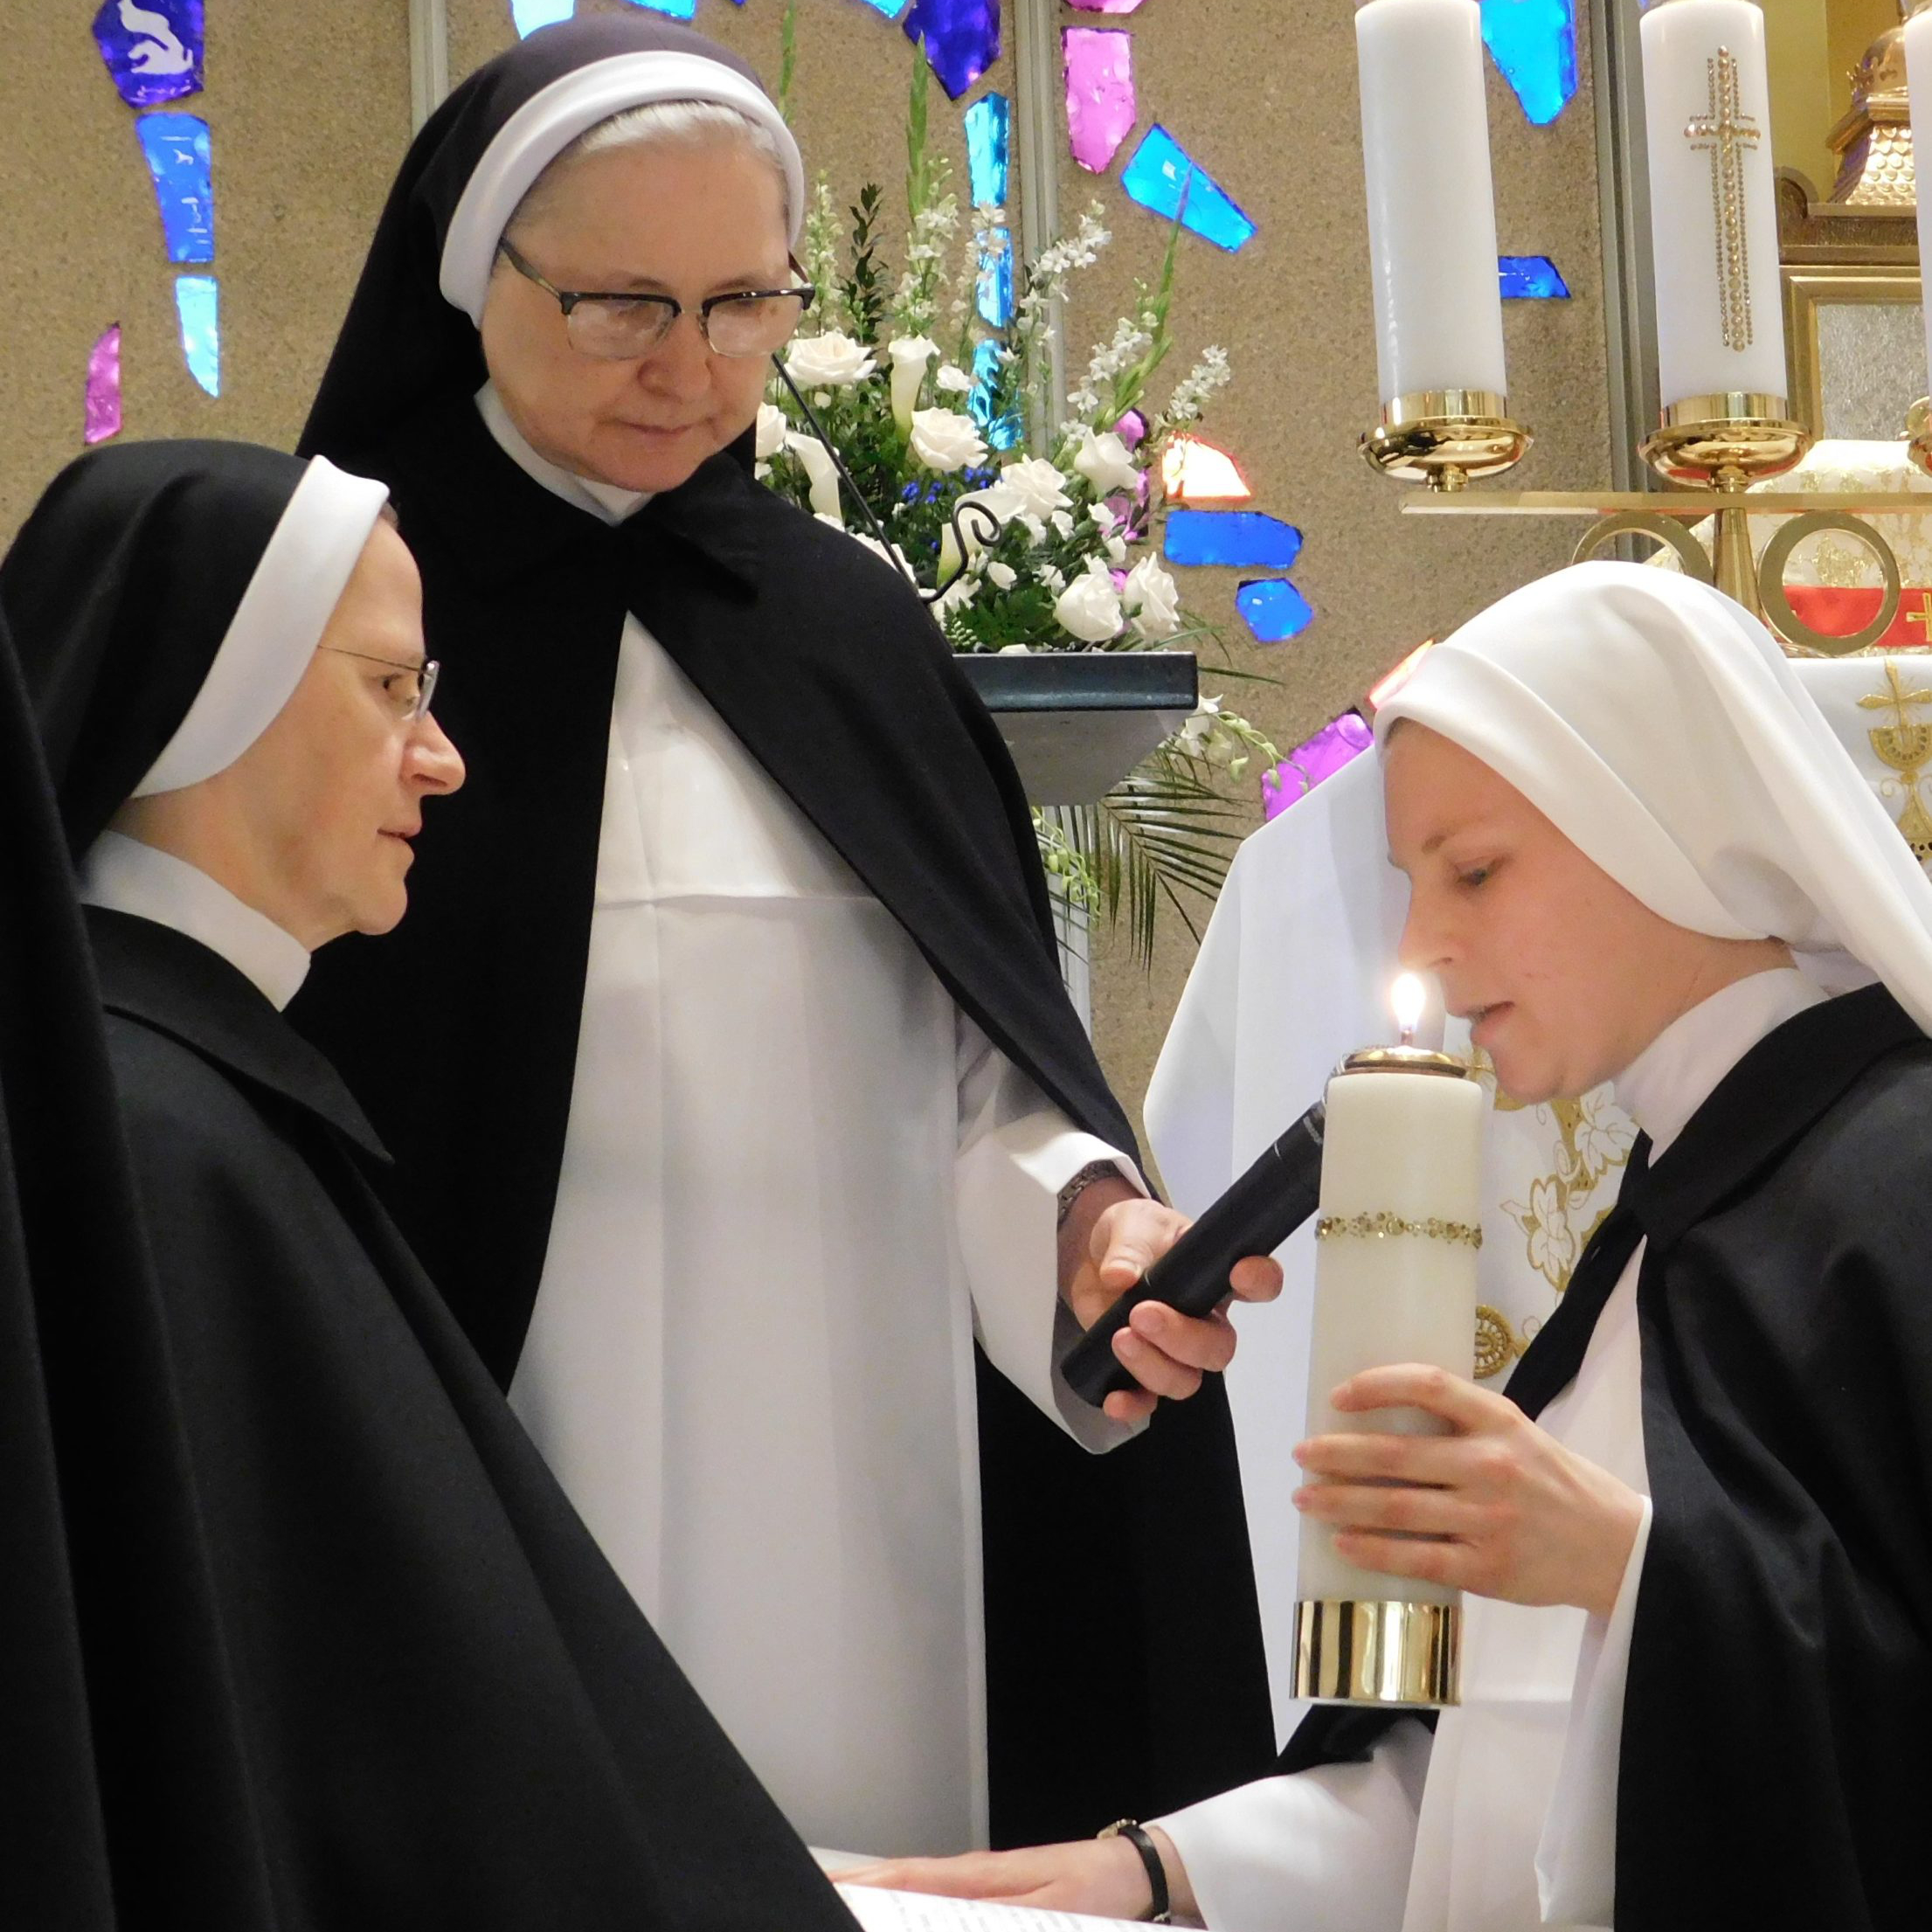 A Sister making her first vows.